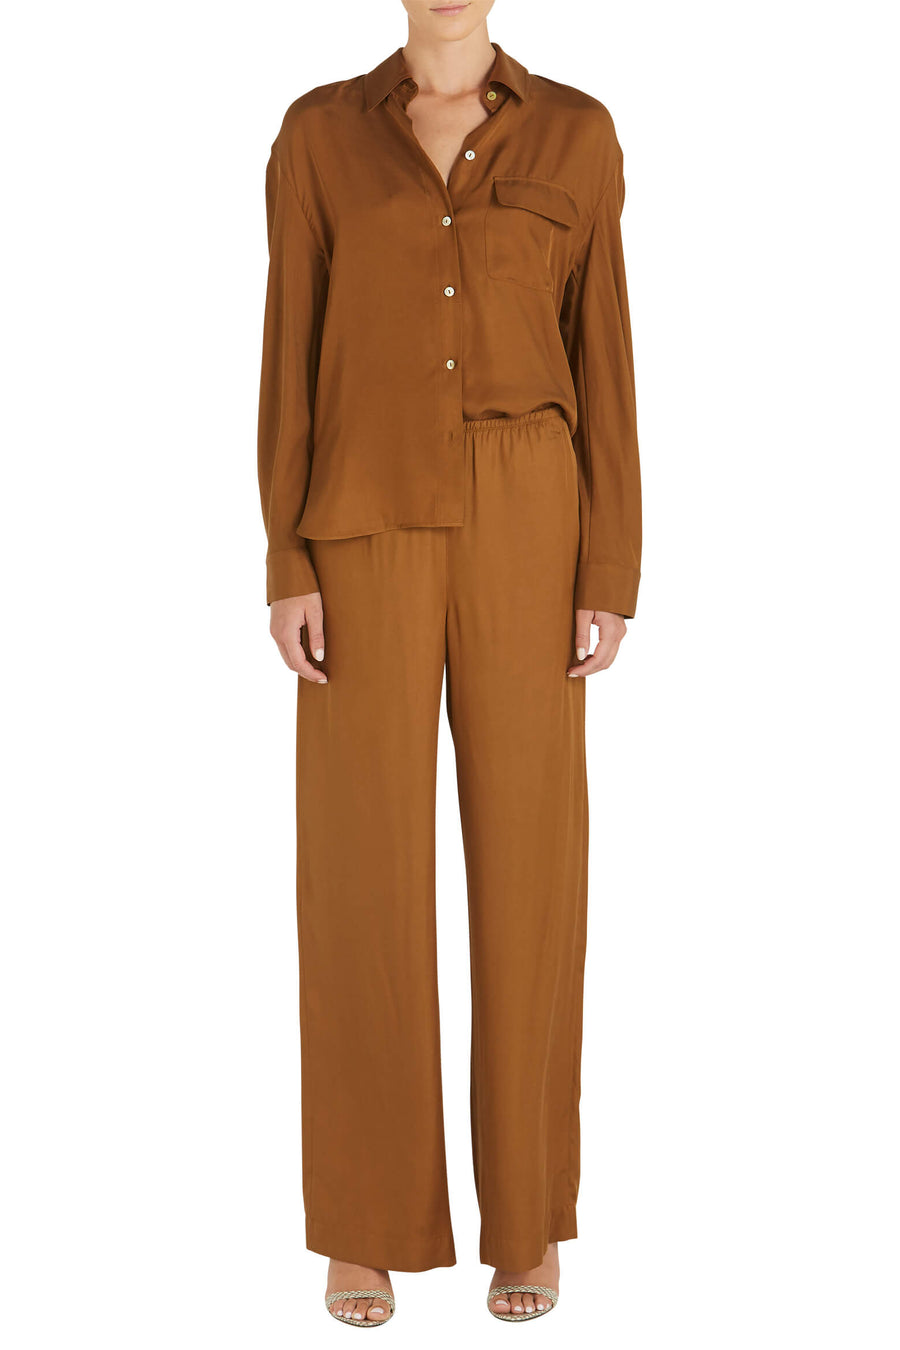 VINCE Silky Pull On Pant in Palo Santo from The New Trend